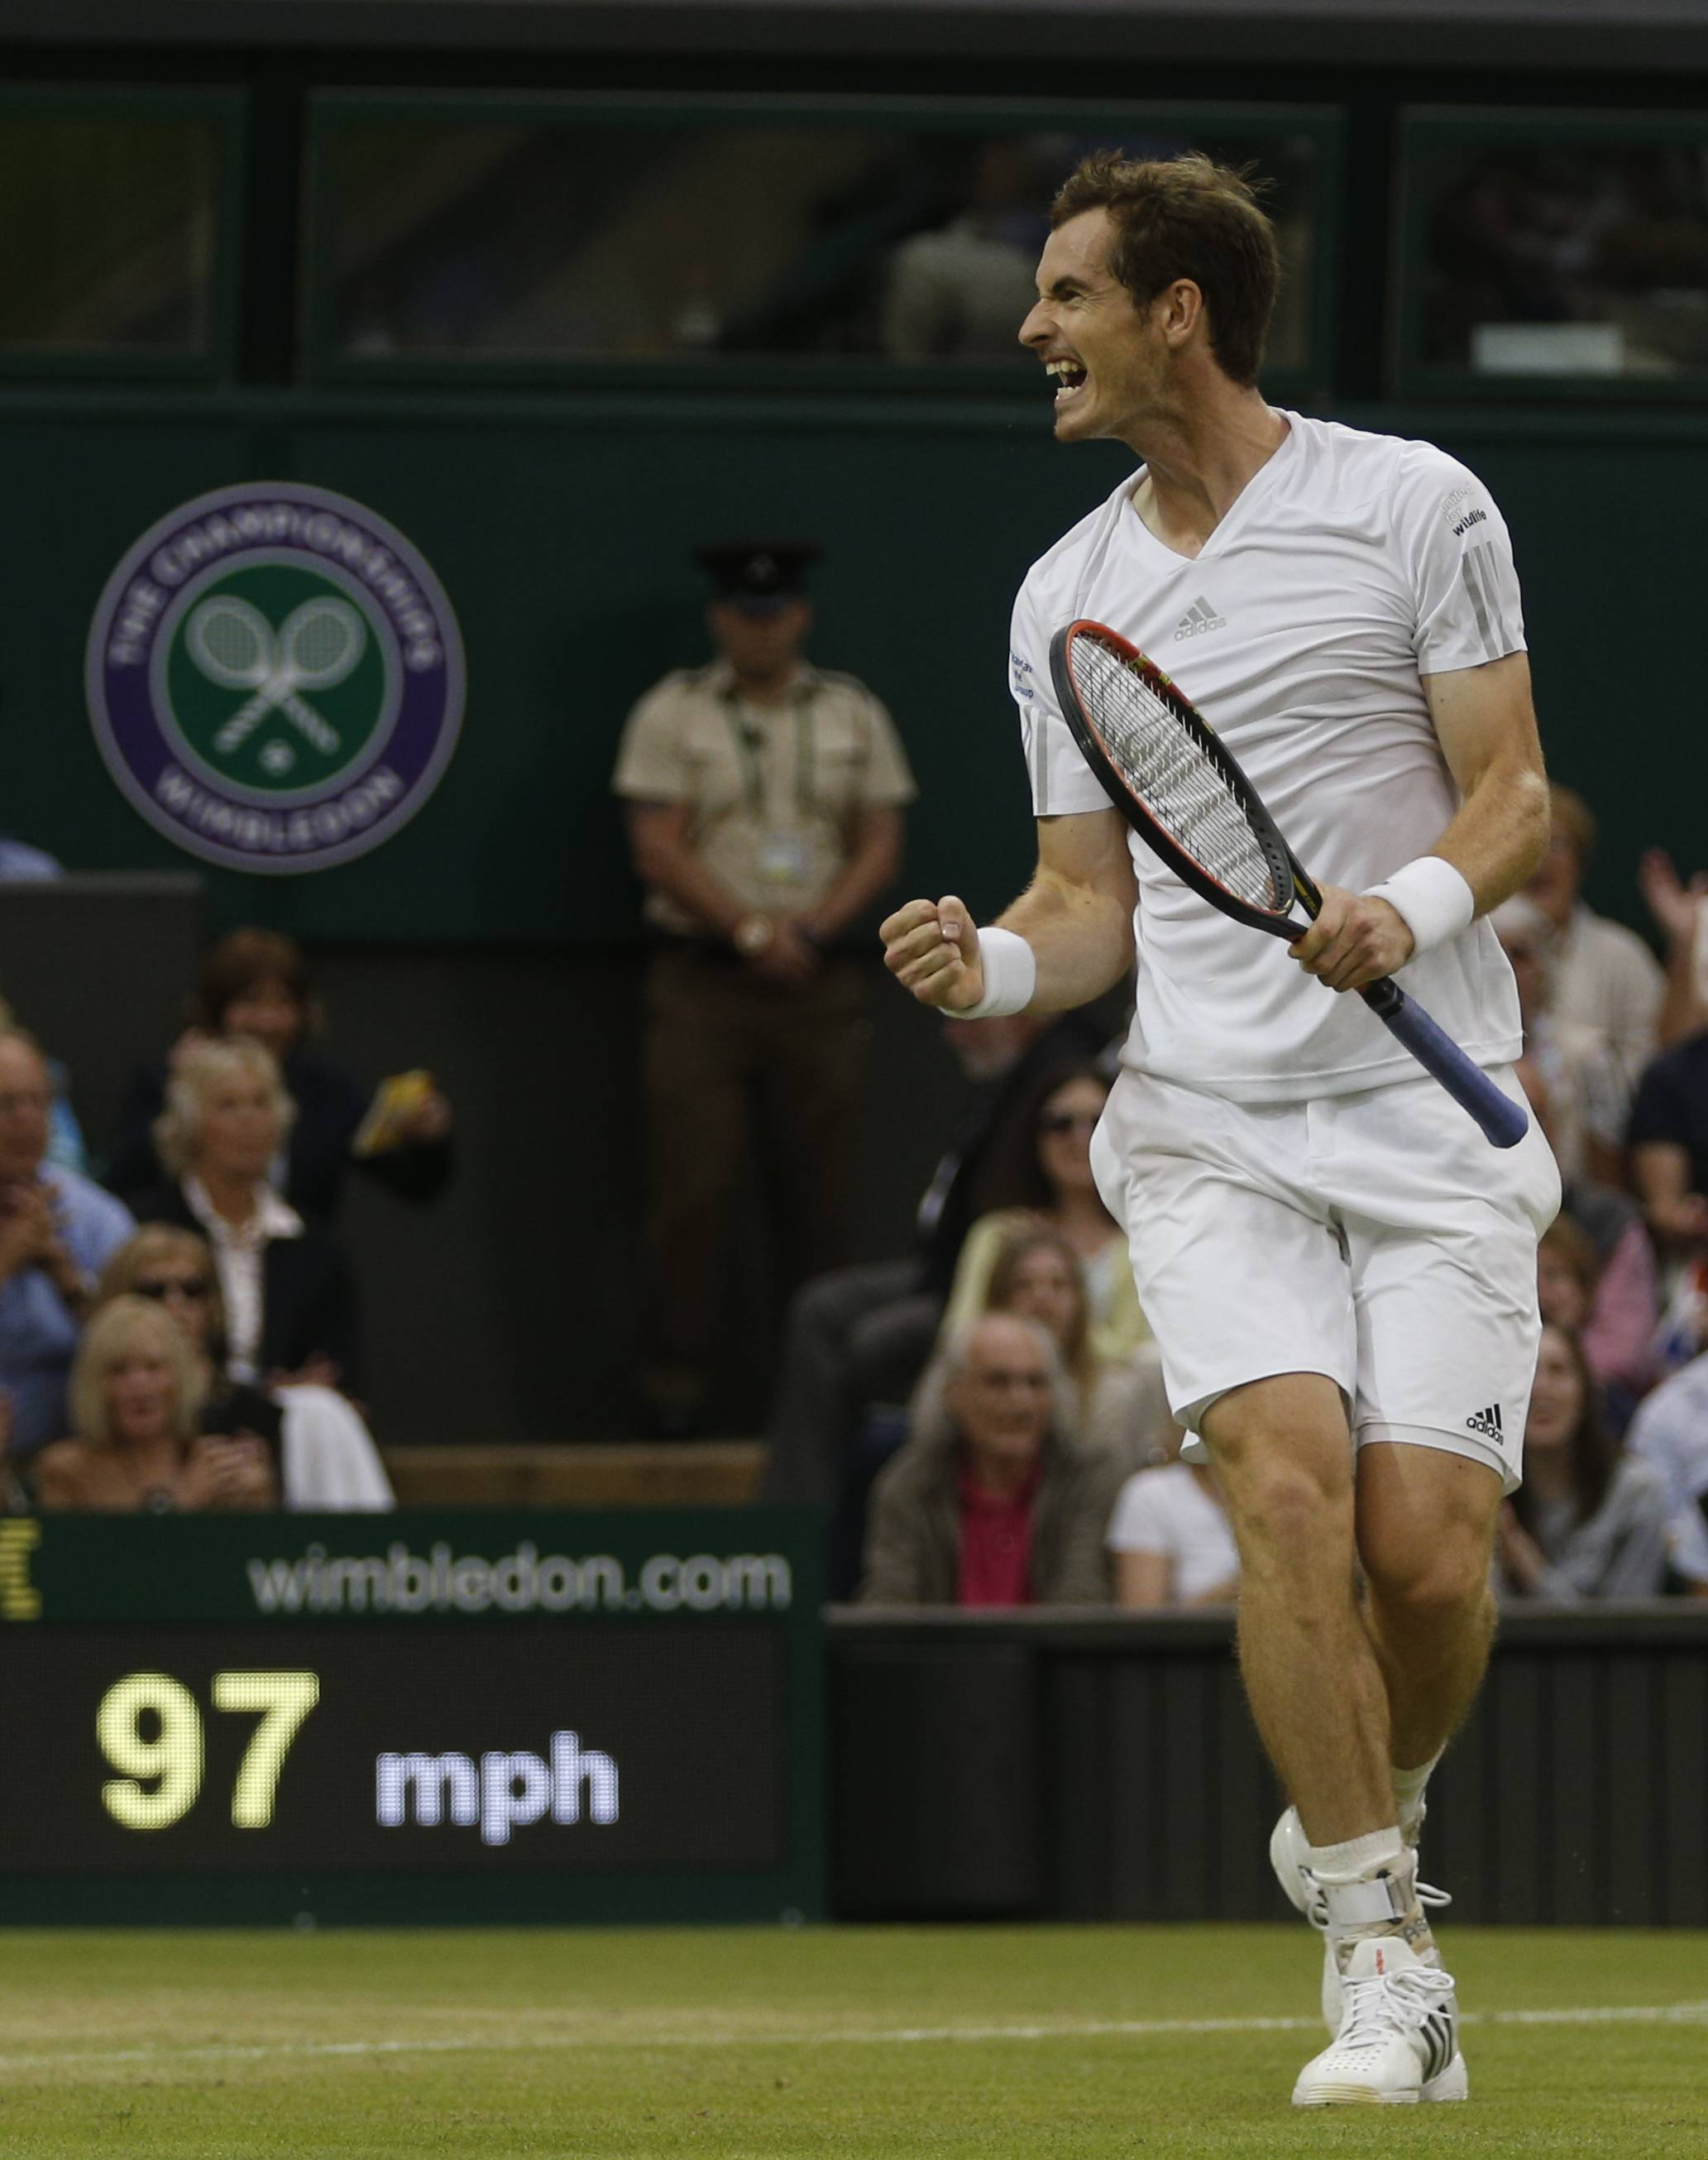 Andy Murray of Britain celebrates after defeating Kevin Anderson of South Africa at Wimbledon on Monday.